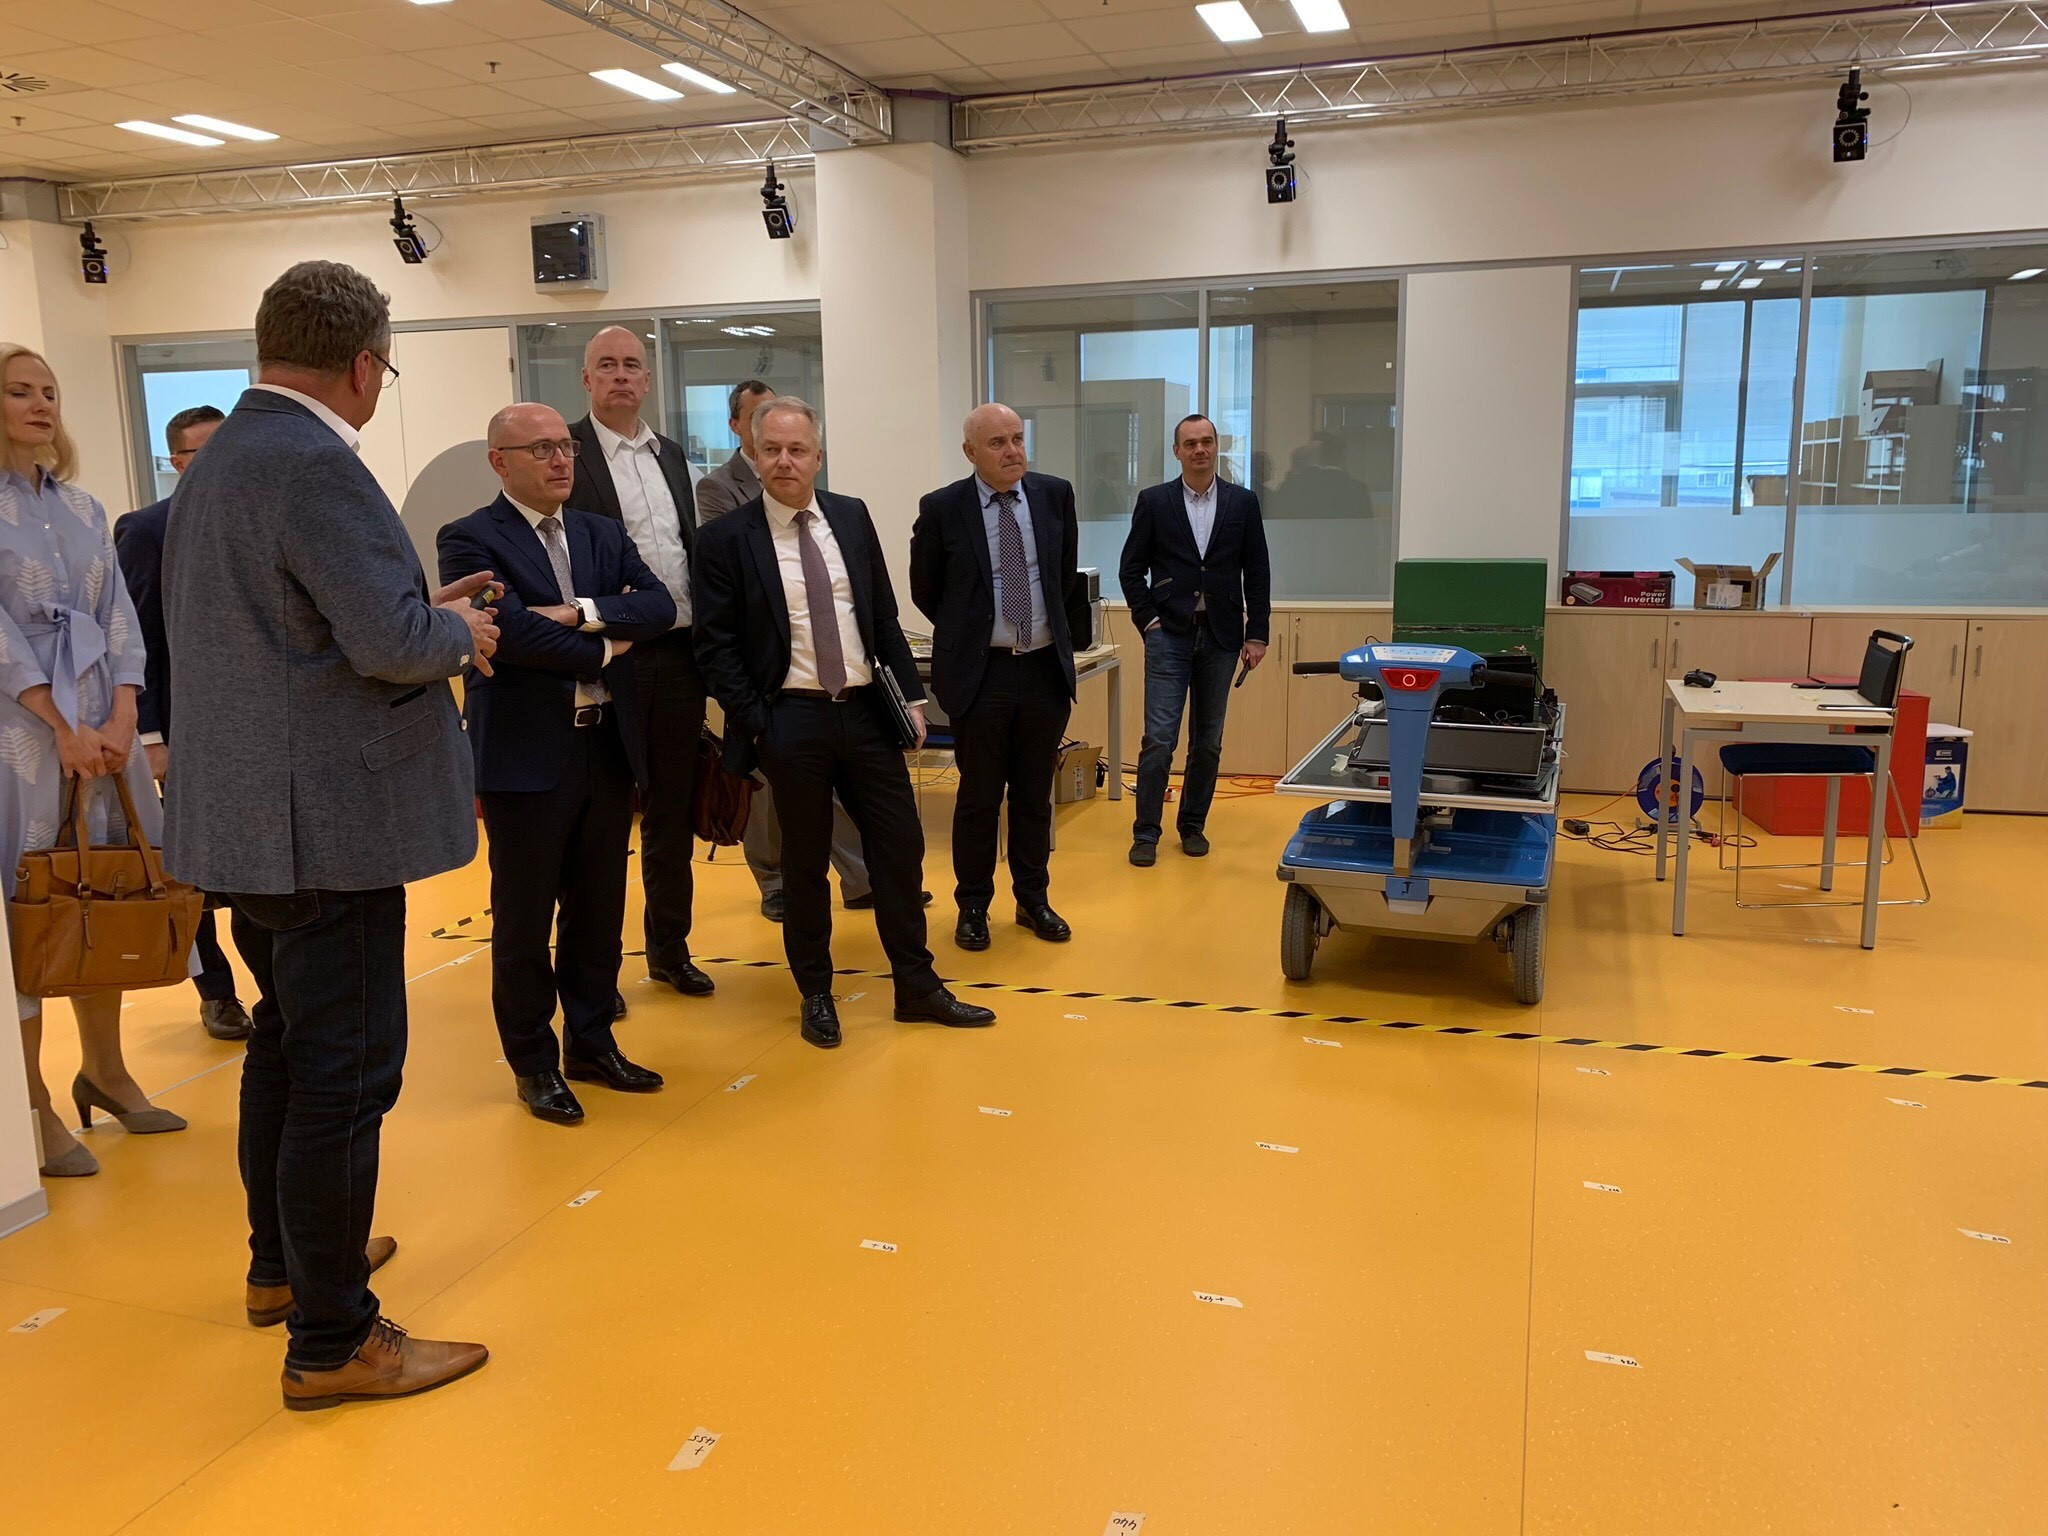 Visit of Bernhard Maier, CEO of Škoda Auto